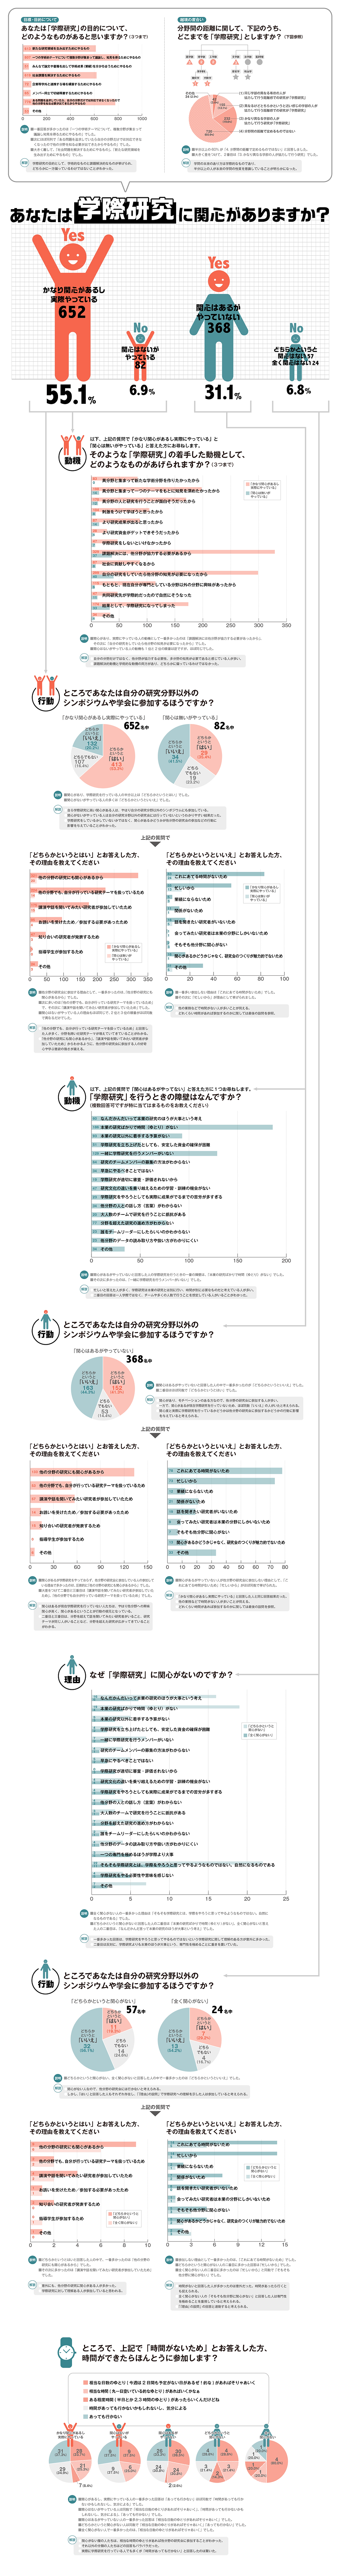 Infographic_0609-1.png